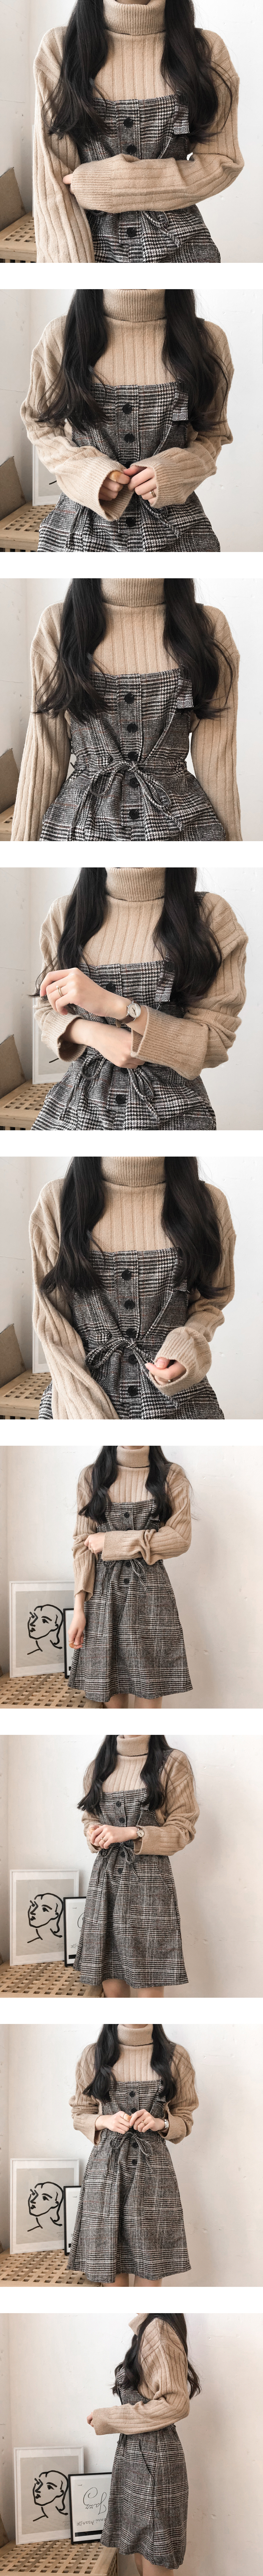 Basic Turtleneck Knitwear